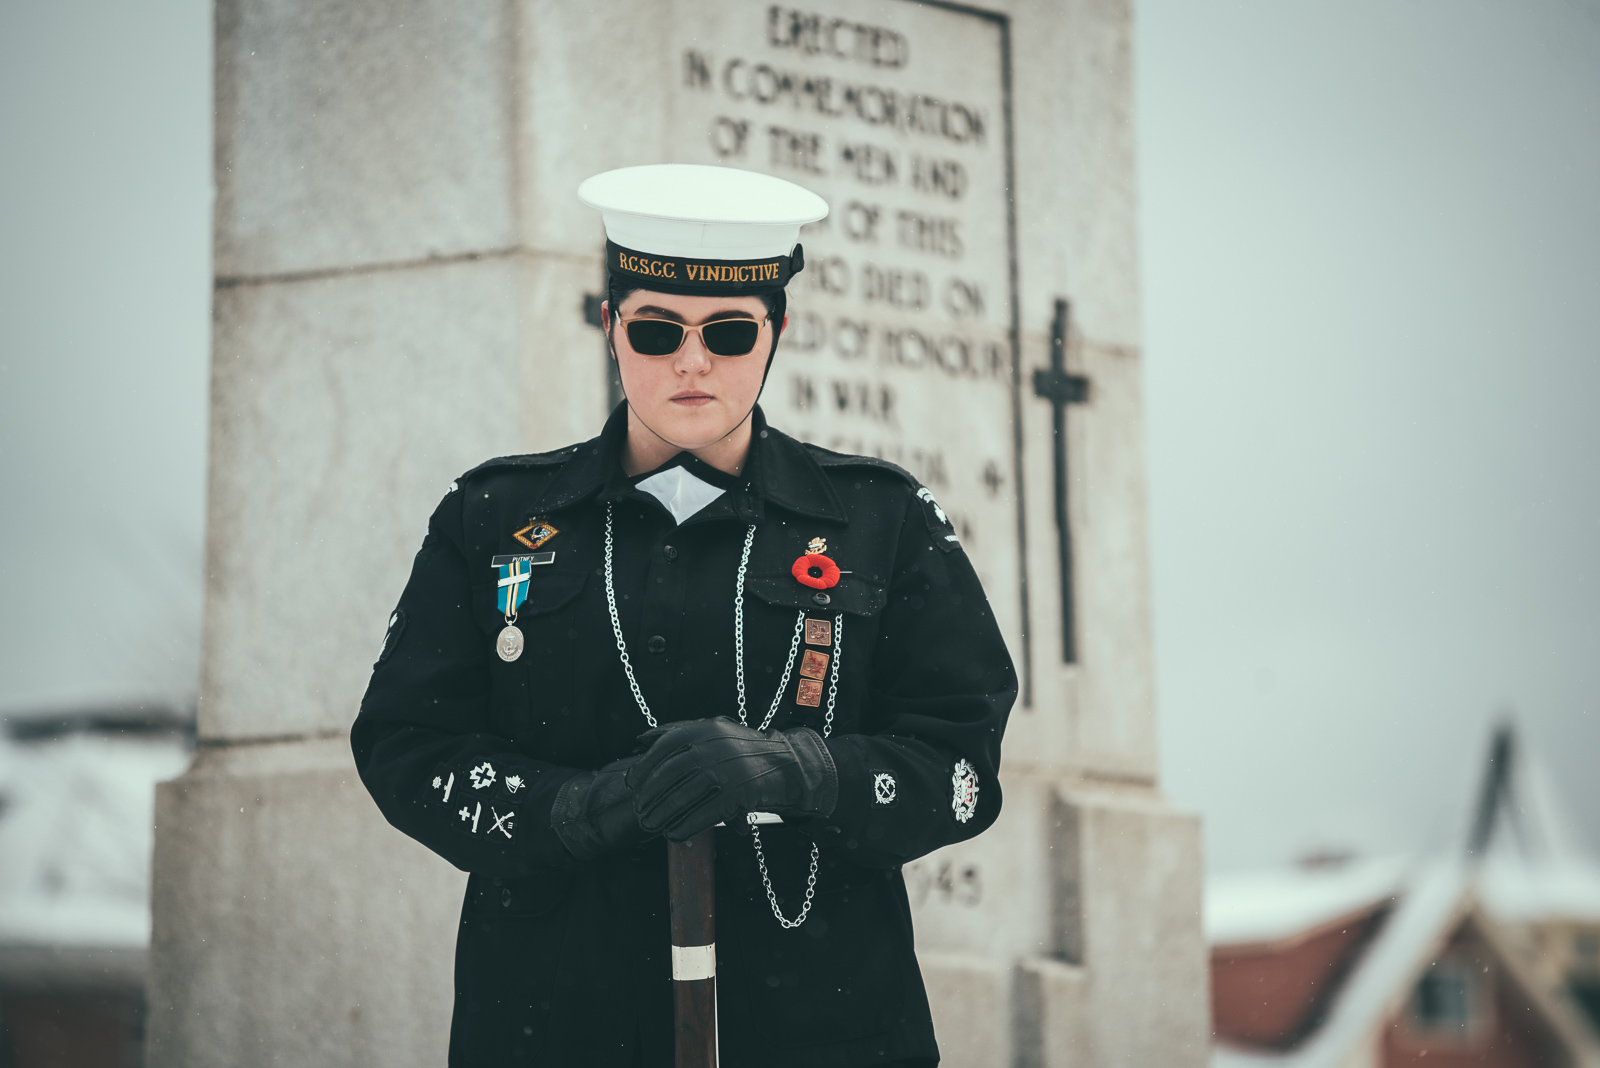 remembrance-day-2018-blog-28.jpg